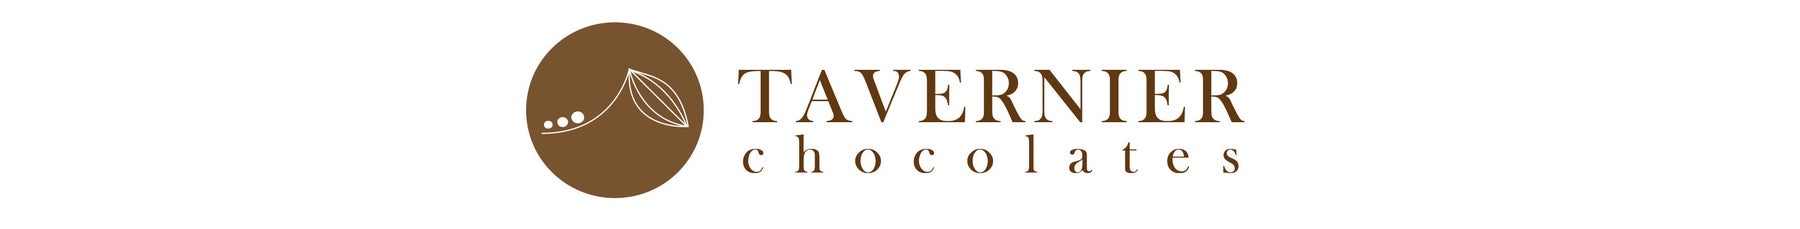 Tavernier Chocolates